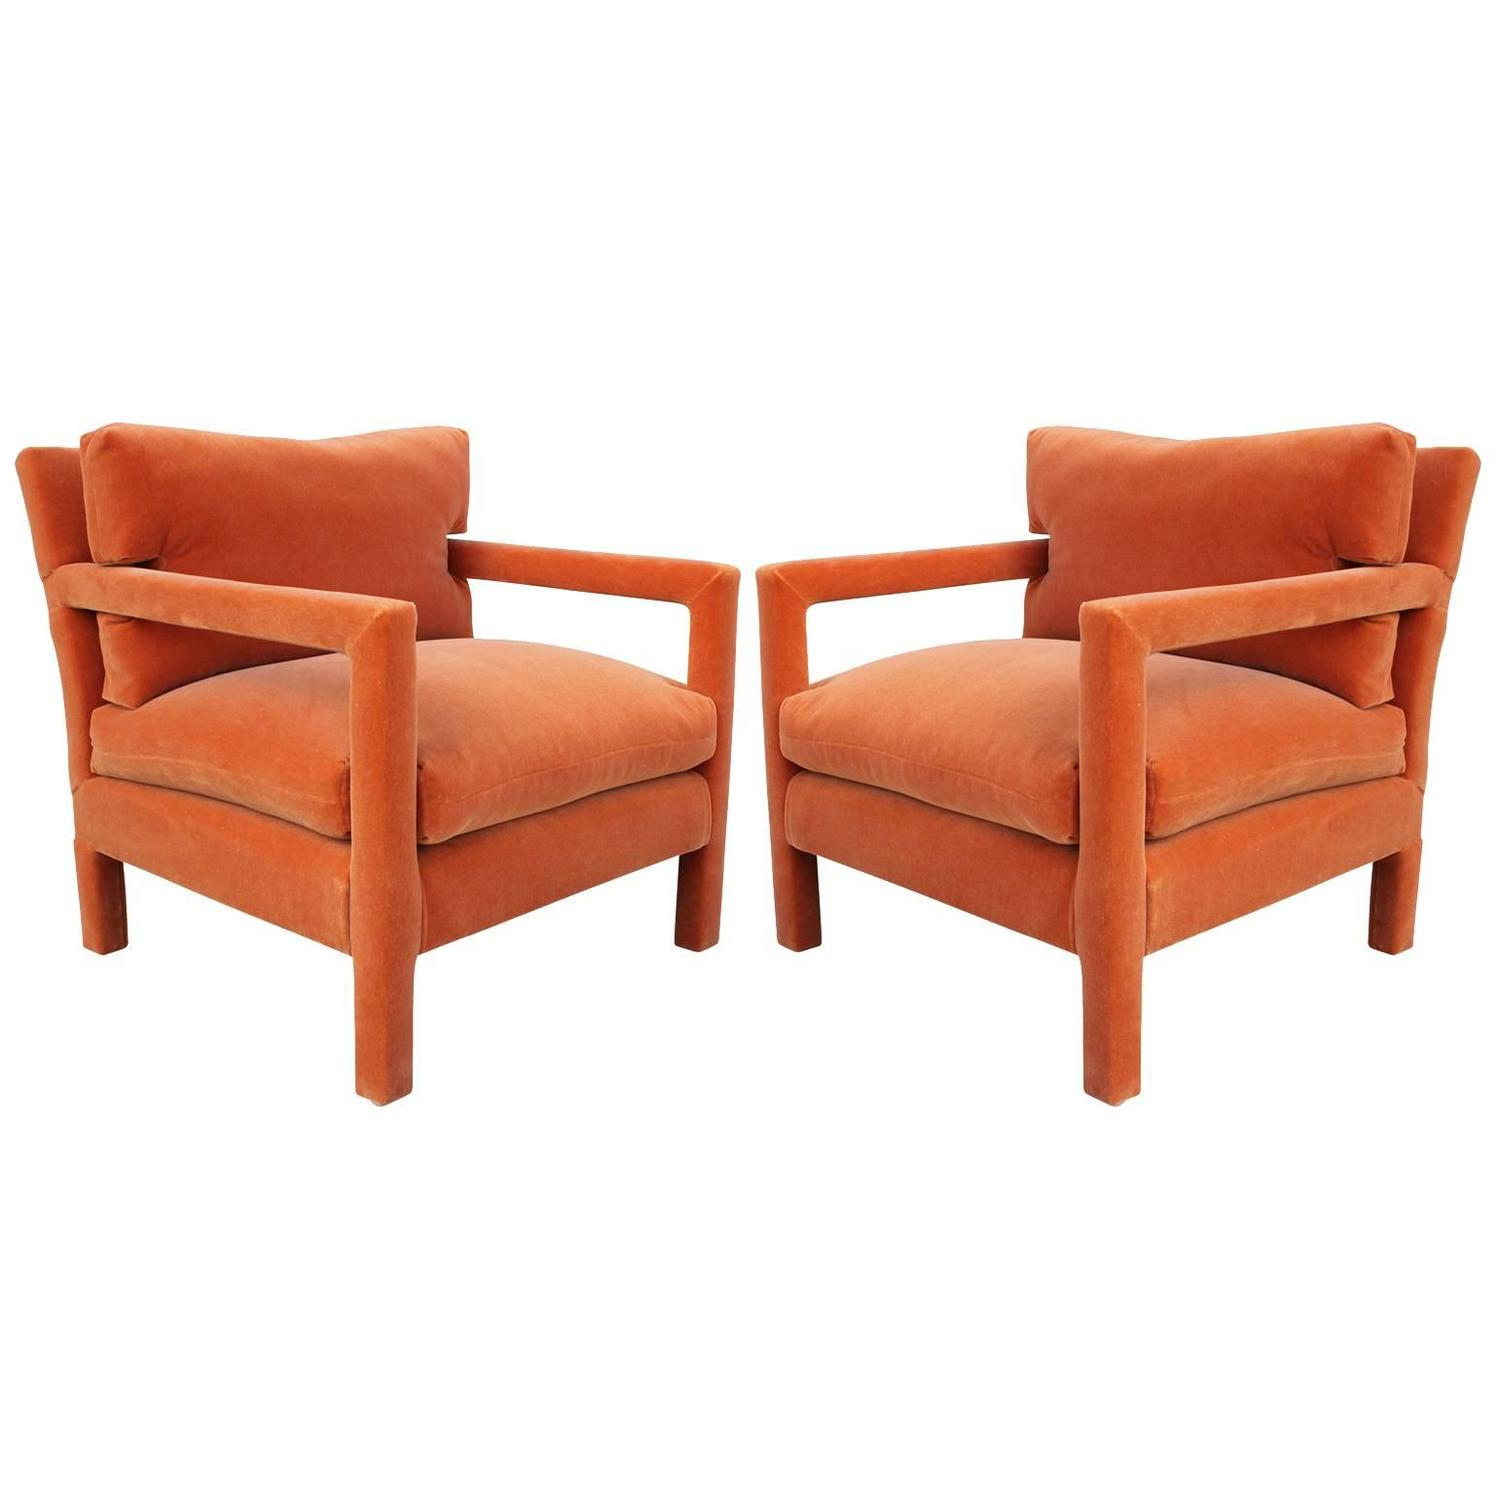 orange parsons chair best chairs irvington recliner fabulous pair of milo baughman style in